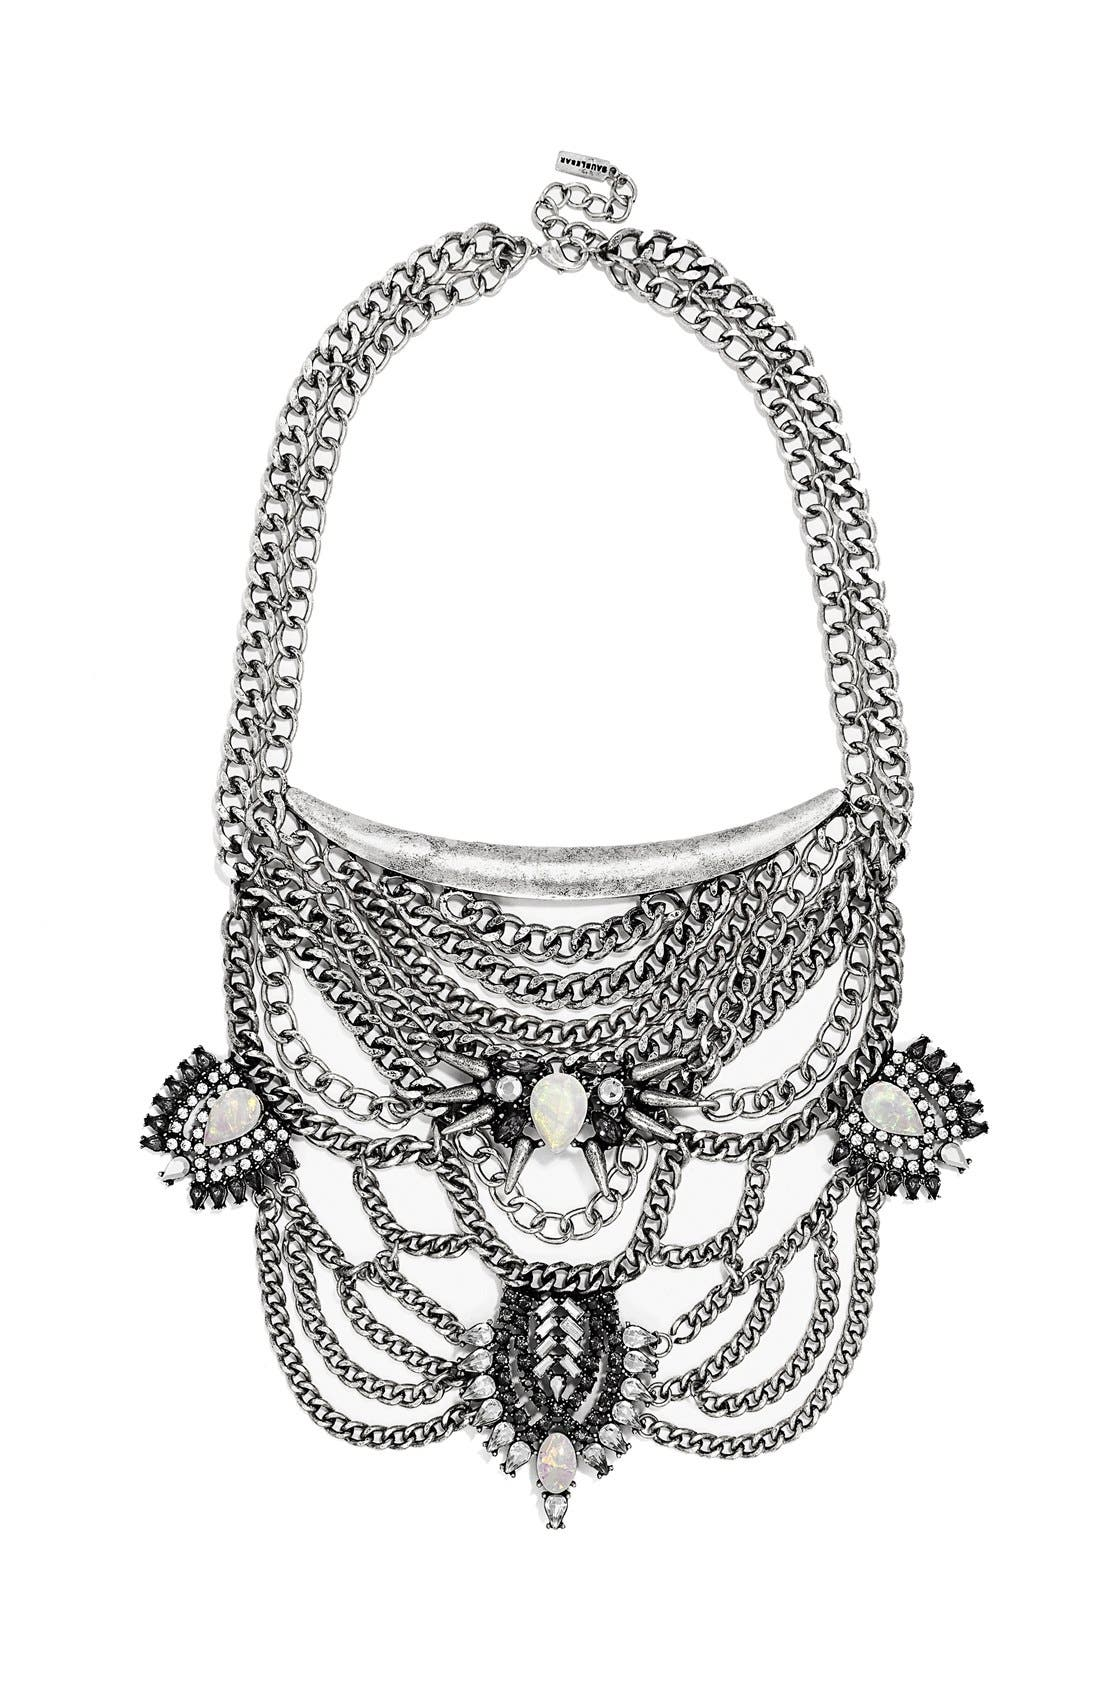 Main Image - BaubleBar 'Orwell' Bib Necklace